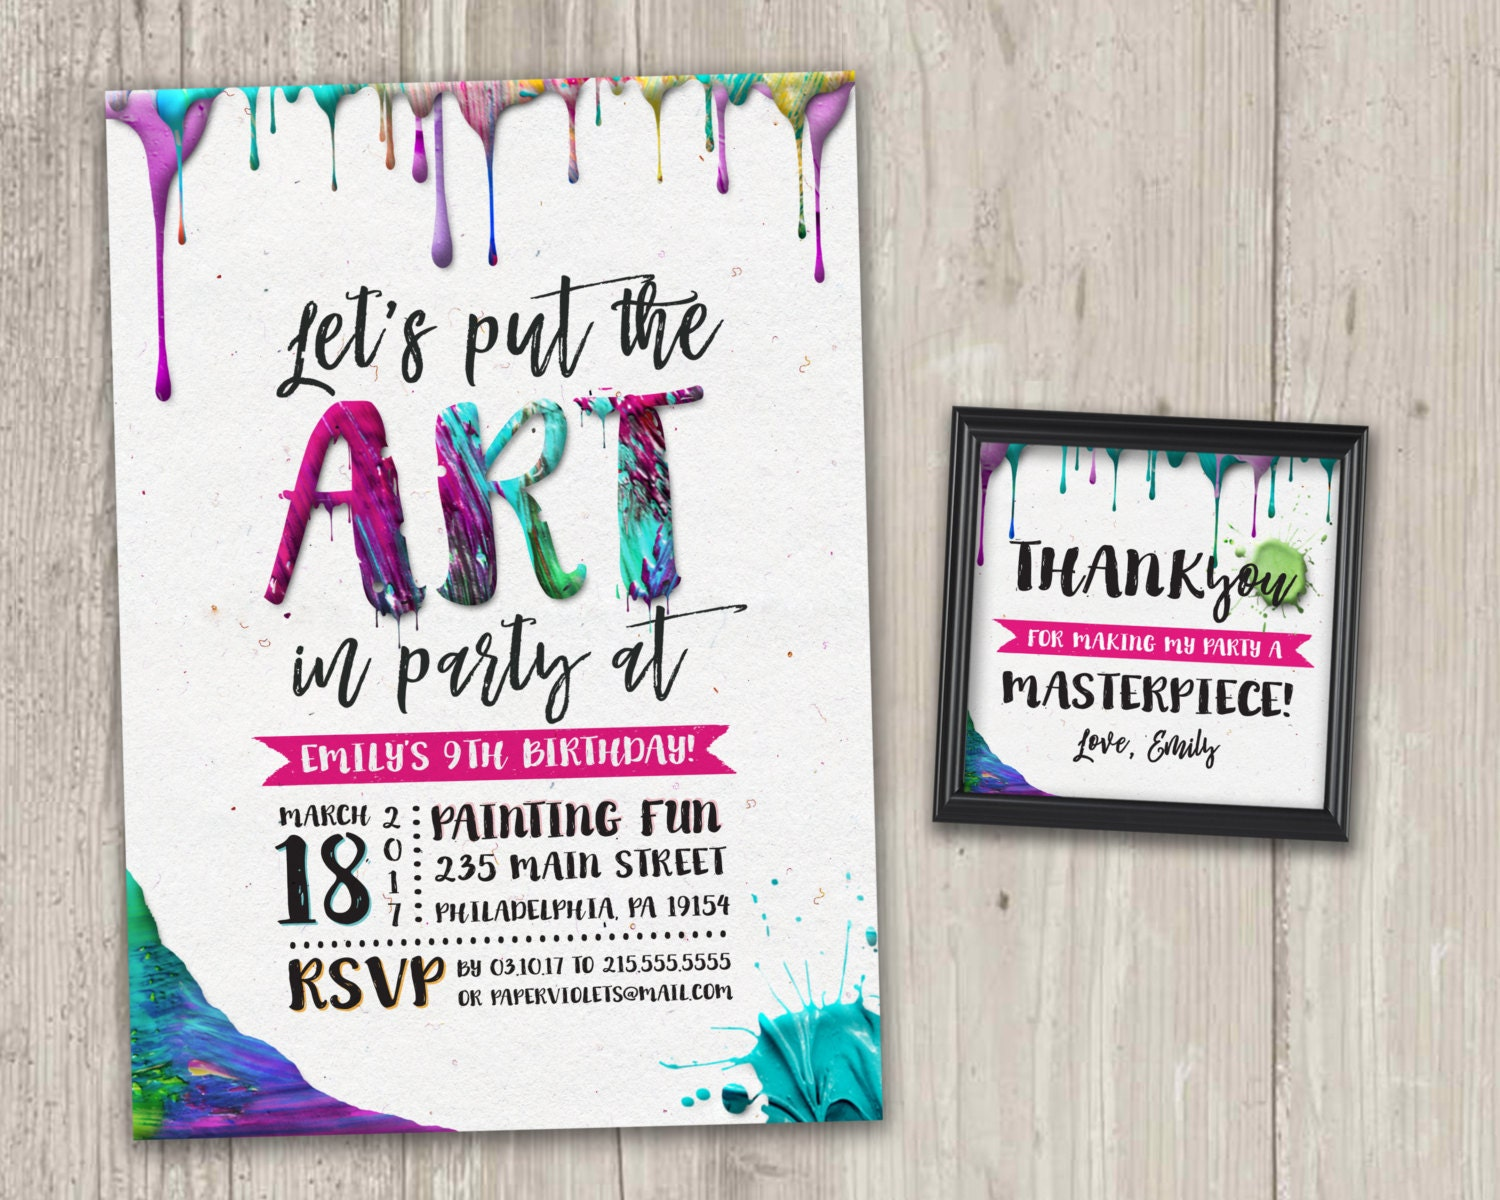 Put The ART In PARTY Art Party Invitation Painting Invite